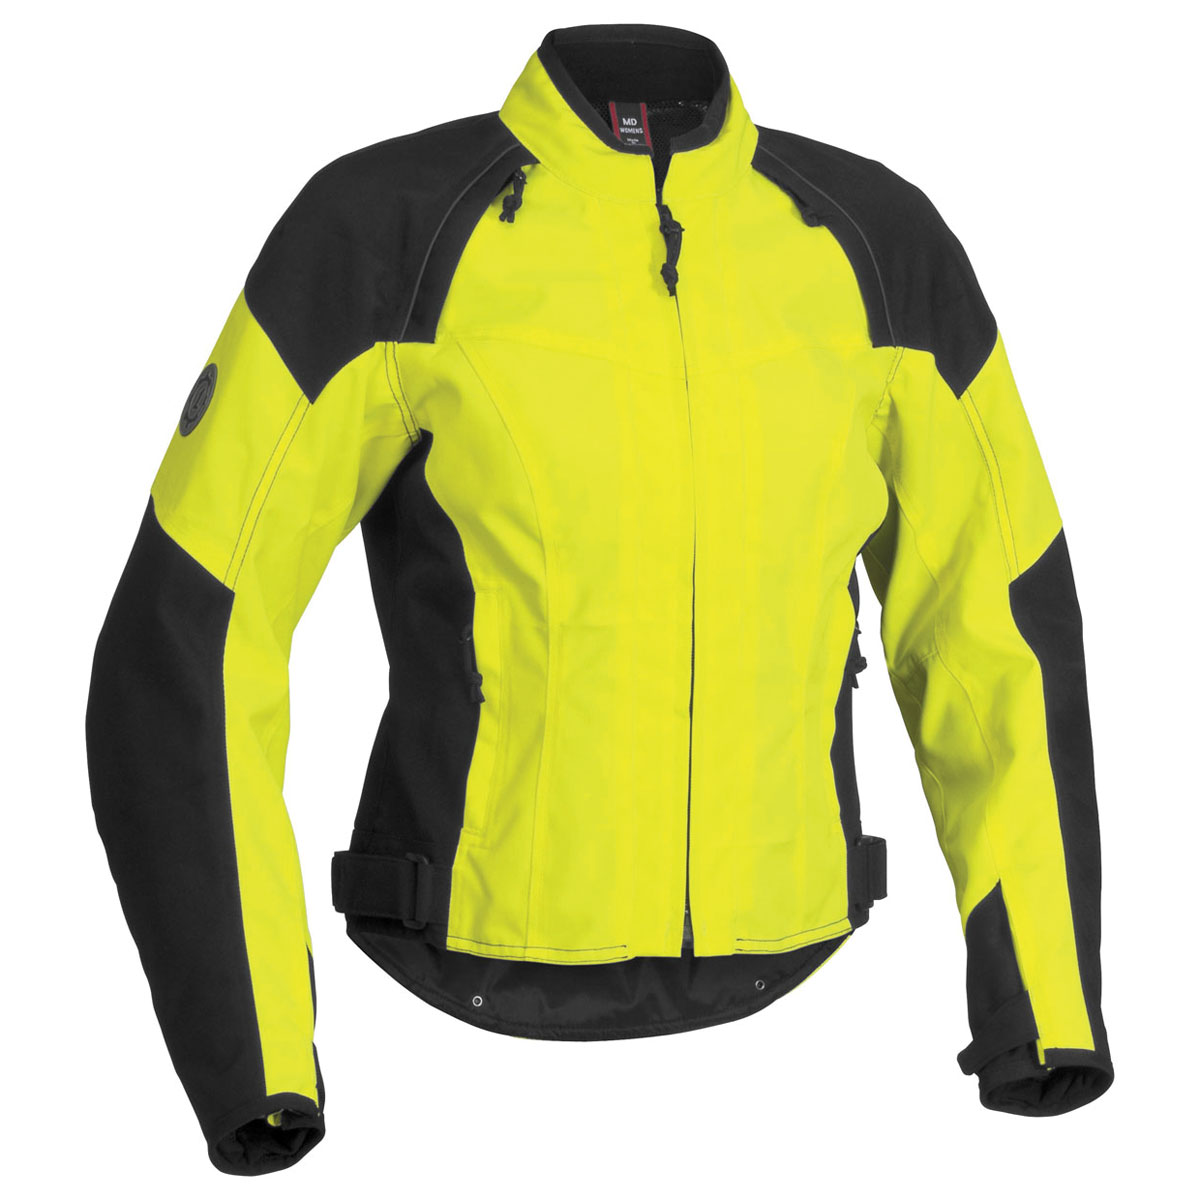 Firstgear Women's Contour DayGlo Textile Jacket